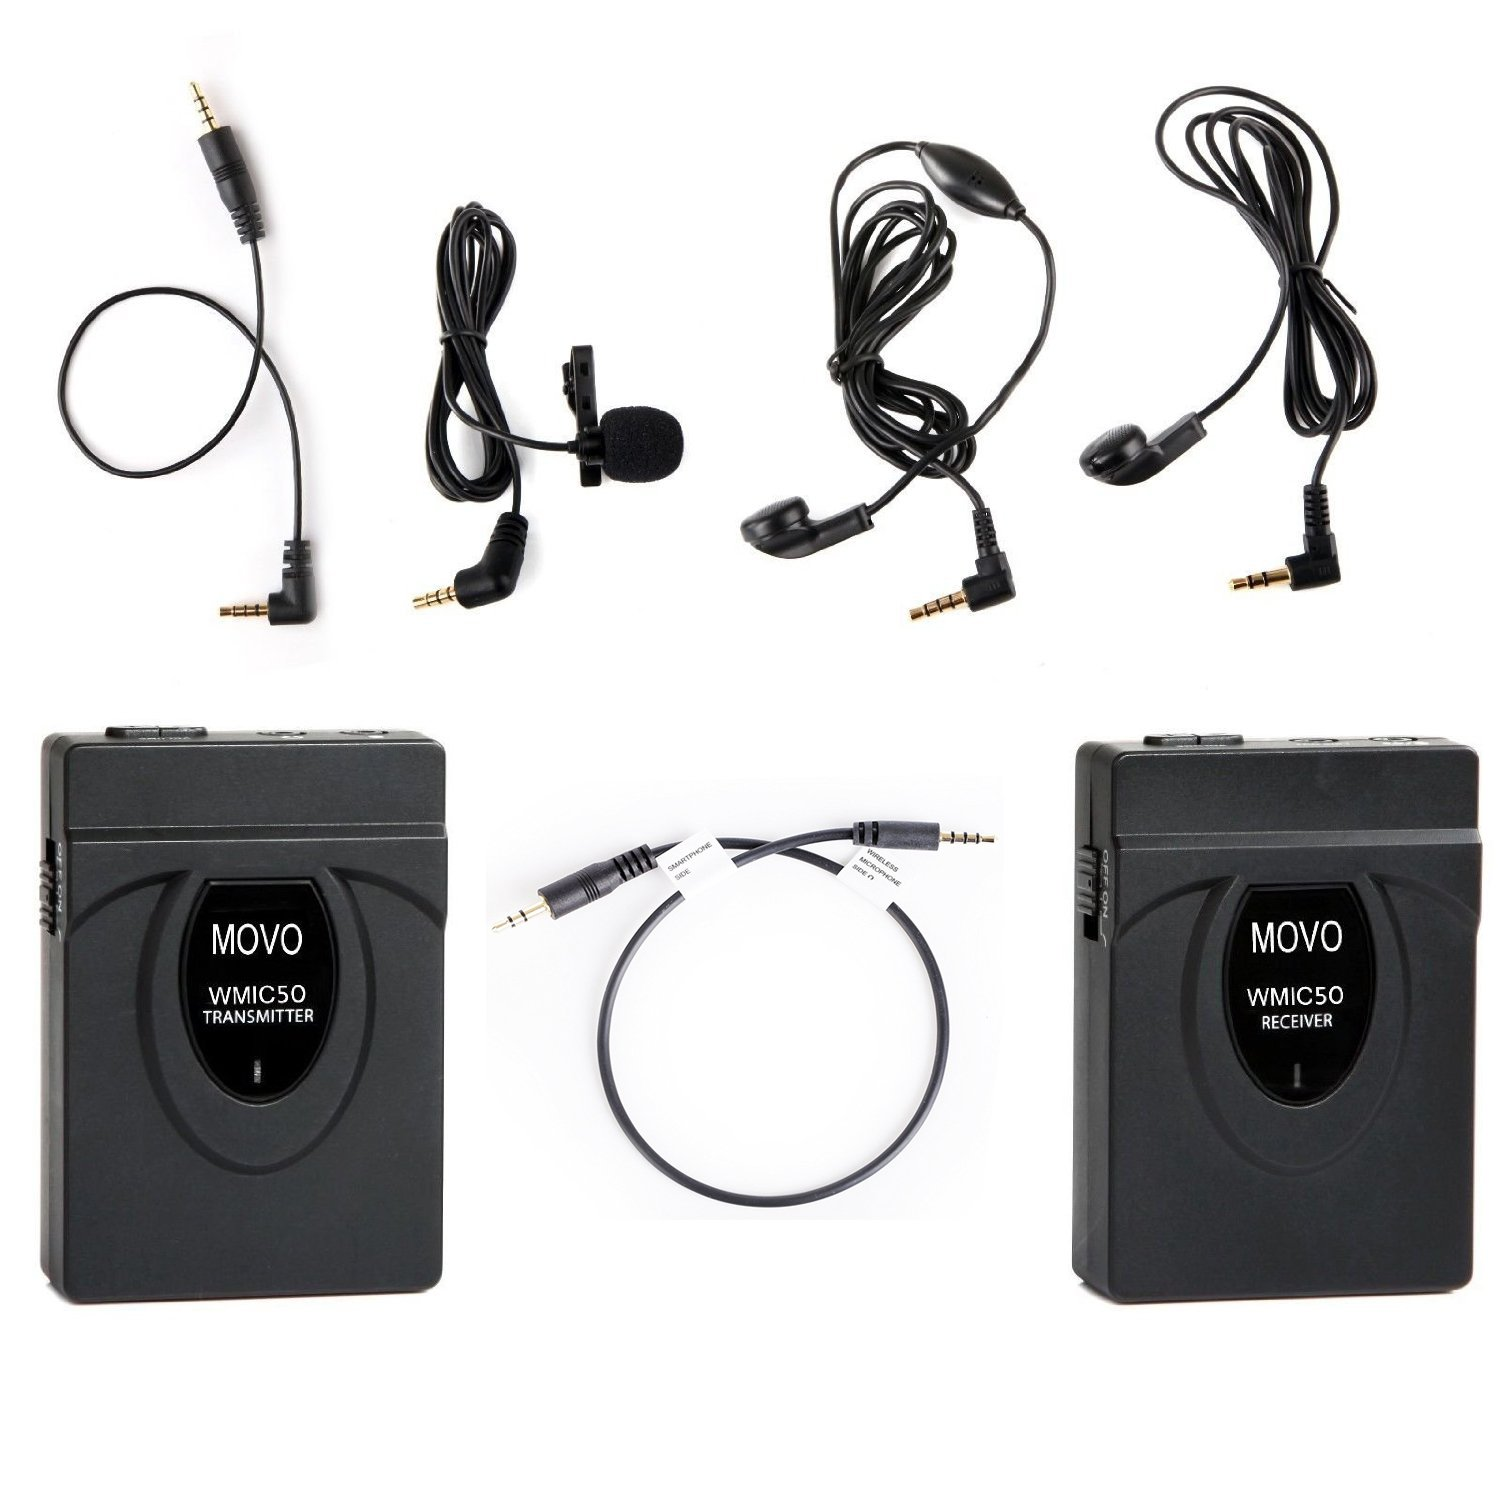 Movo 2.4GHz Wireless Lavalier Microphone System (164' Range) with Transmitter, Receiver, Lav Mic, and TRRS Cable for iPhone 5, 5C, 5S, 6, 6S, 7, 8, X (Regular & Plus), Samsung Galaxy, Note & More